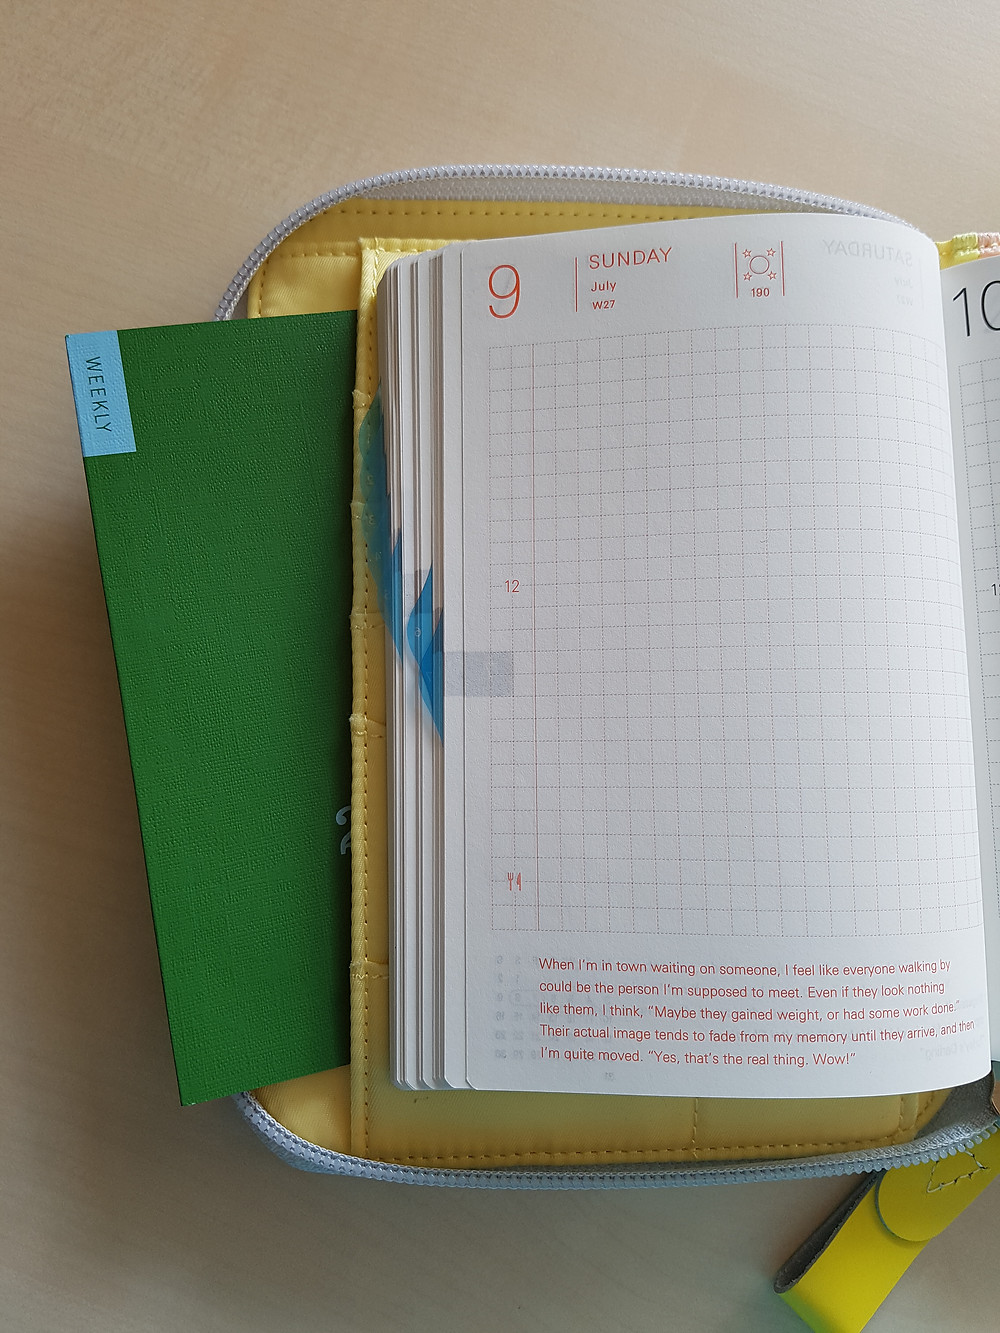 StickersSwissMade - blogpost - planner peace part 2 - Hobonichi Cousin and William Hannah discound notebook-3